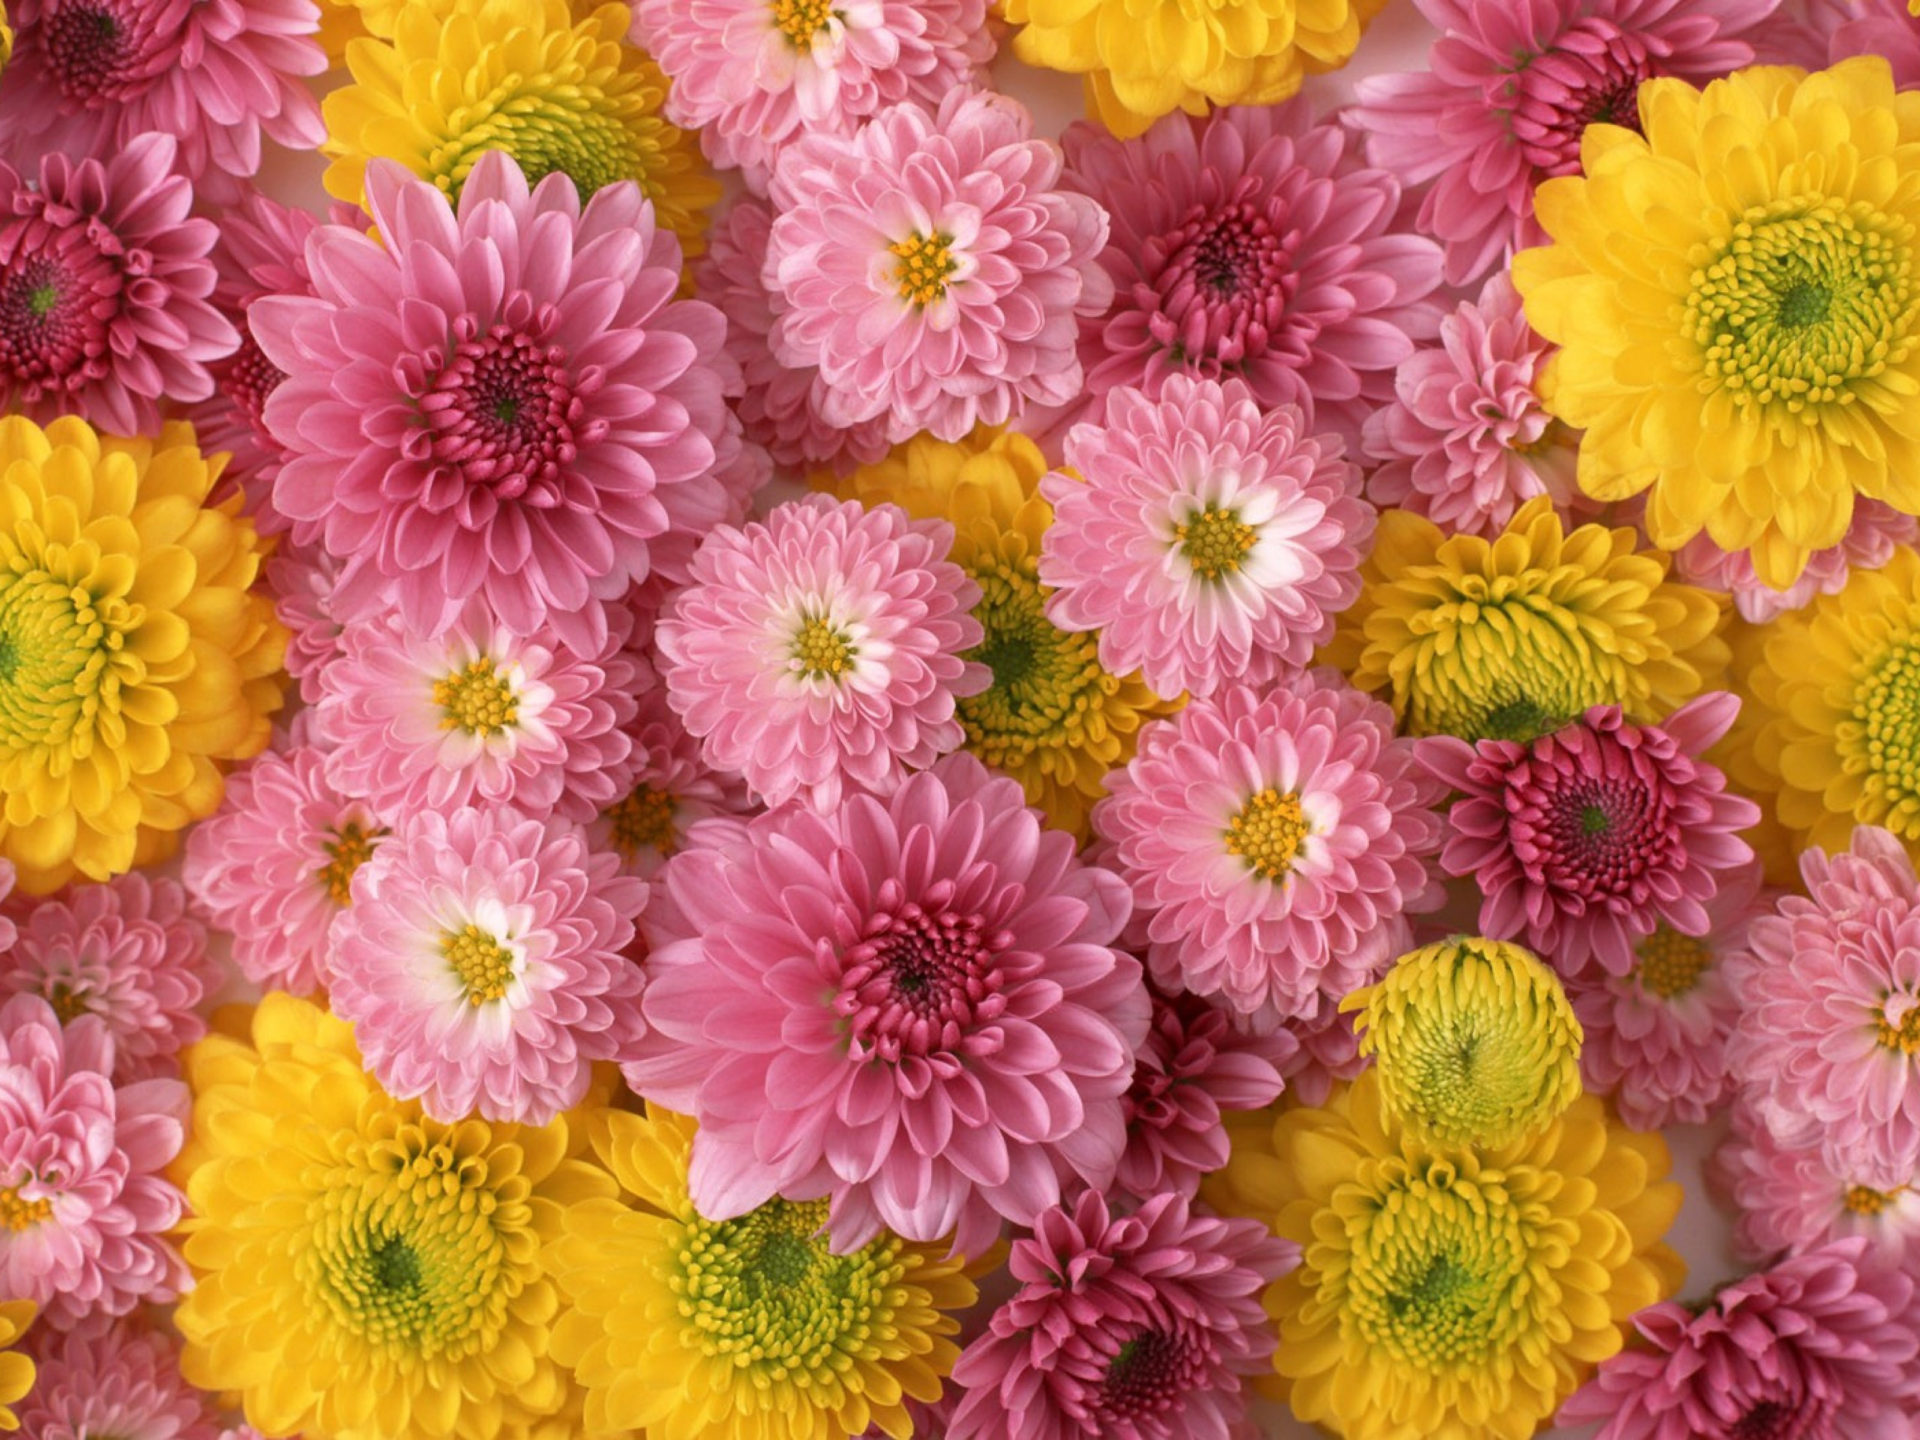 Red Flower Wallpaper Hd Chrysanthemums Flower Beautiful Flowers With Lights Color